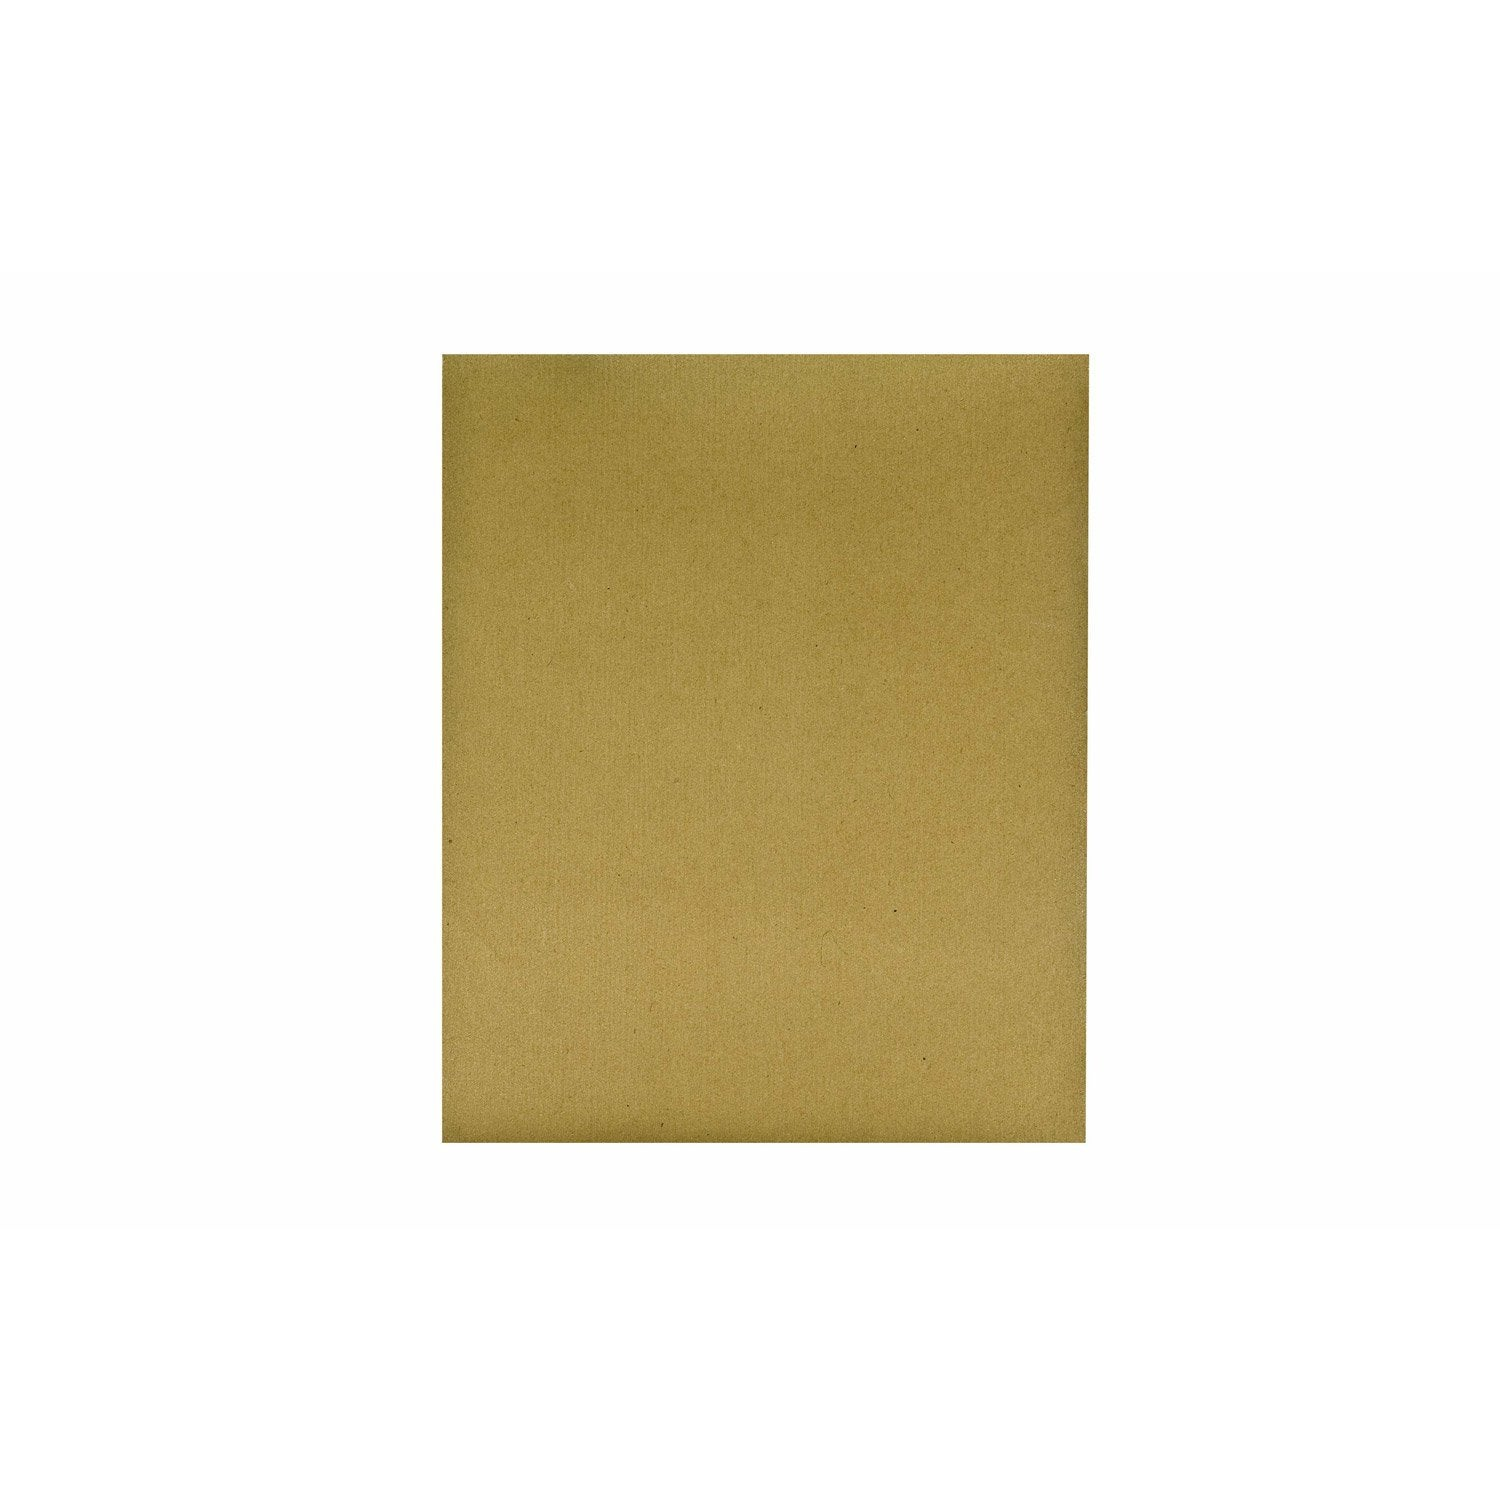 Feuille abrasive 230 x 280 mm grains 180 leroy merlin - Feuille stratifie leroy merlin ...